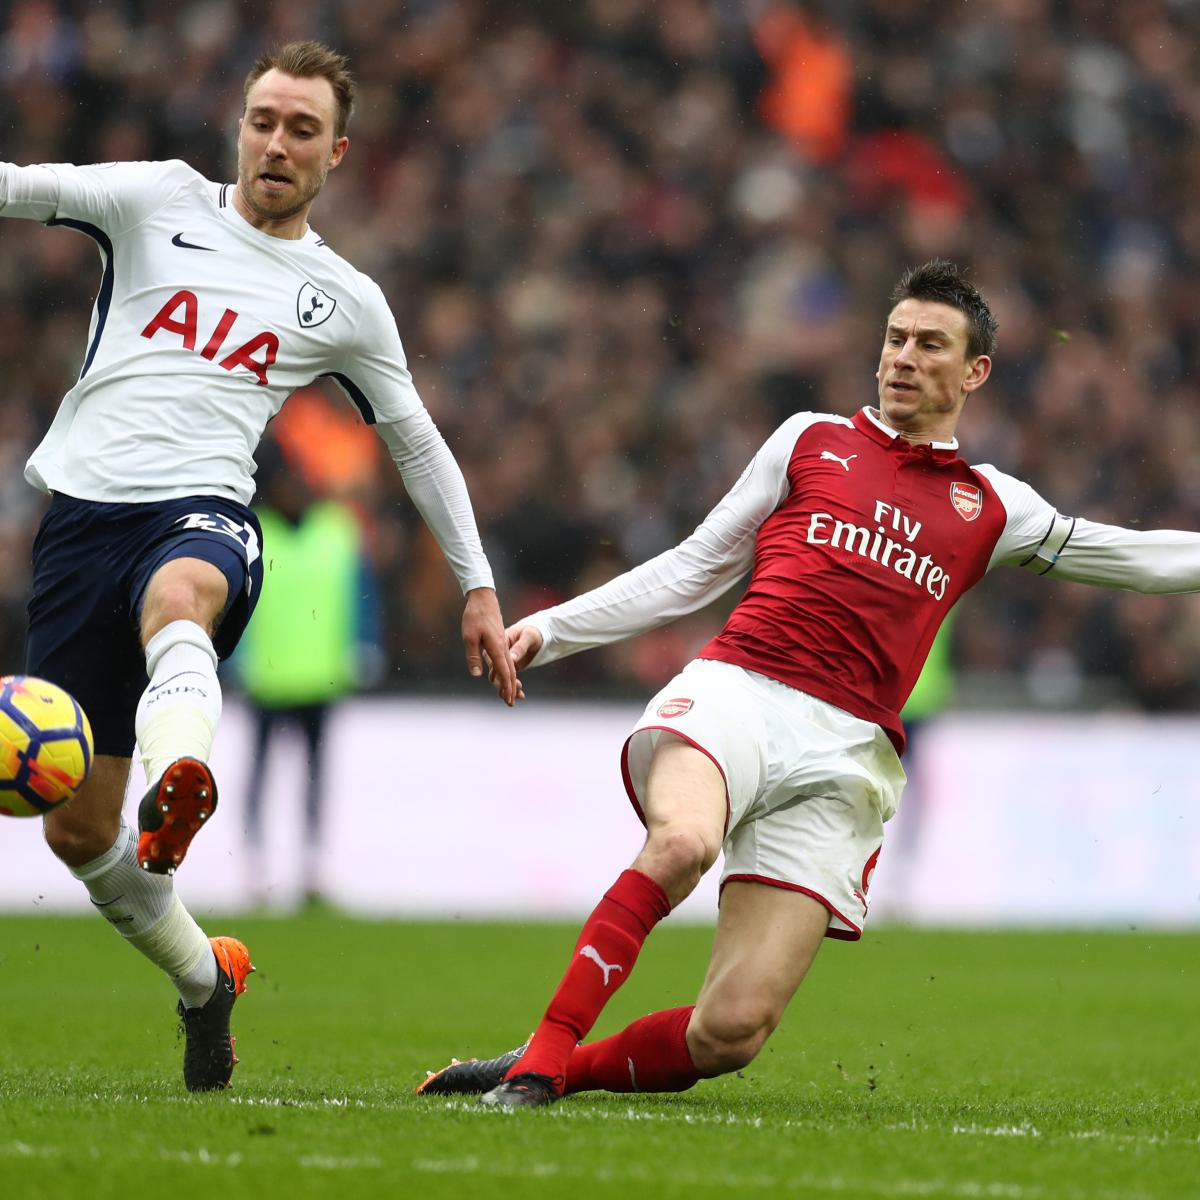 Reports Arsenal Were Ready To Sign Lucas: Tottenham Announce Stadium Won't Be Ready To Host Arsenal